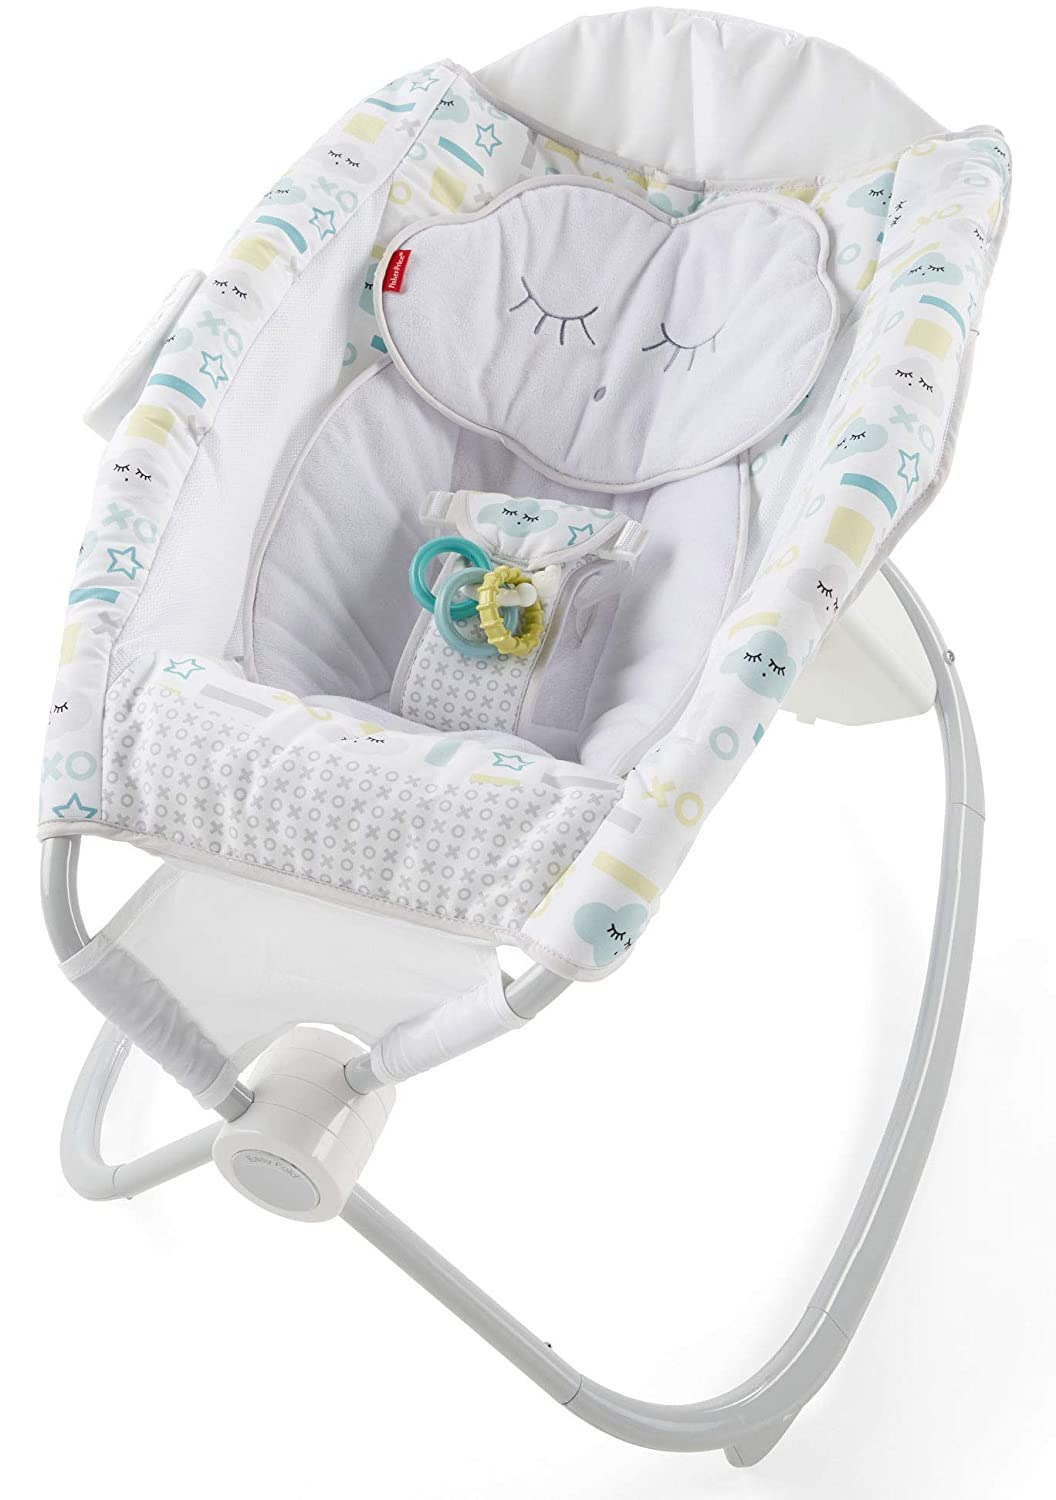 Fisher-Price Deluxe Auto Rock 'n Play Sleeper with Smart Connect Fisher-Price Baby FMC41